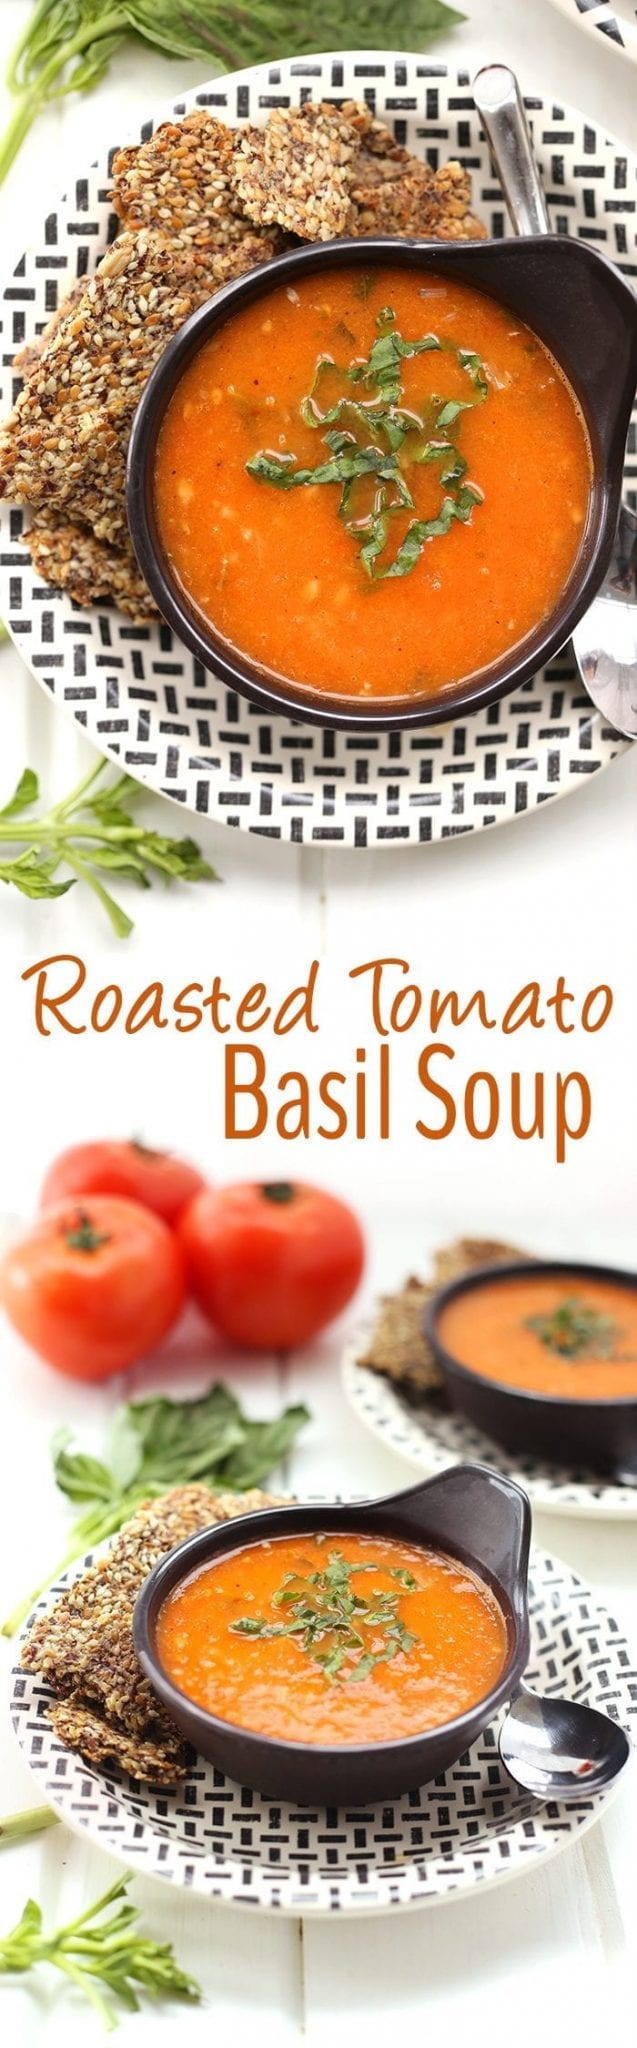 Comfort food at its finest with this easy, healthy and flavorful Roasted Tomato Basil Soup. Simple ingredients and simple instructions are all you need for a warm bowl of this delicious soup recipe.